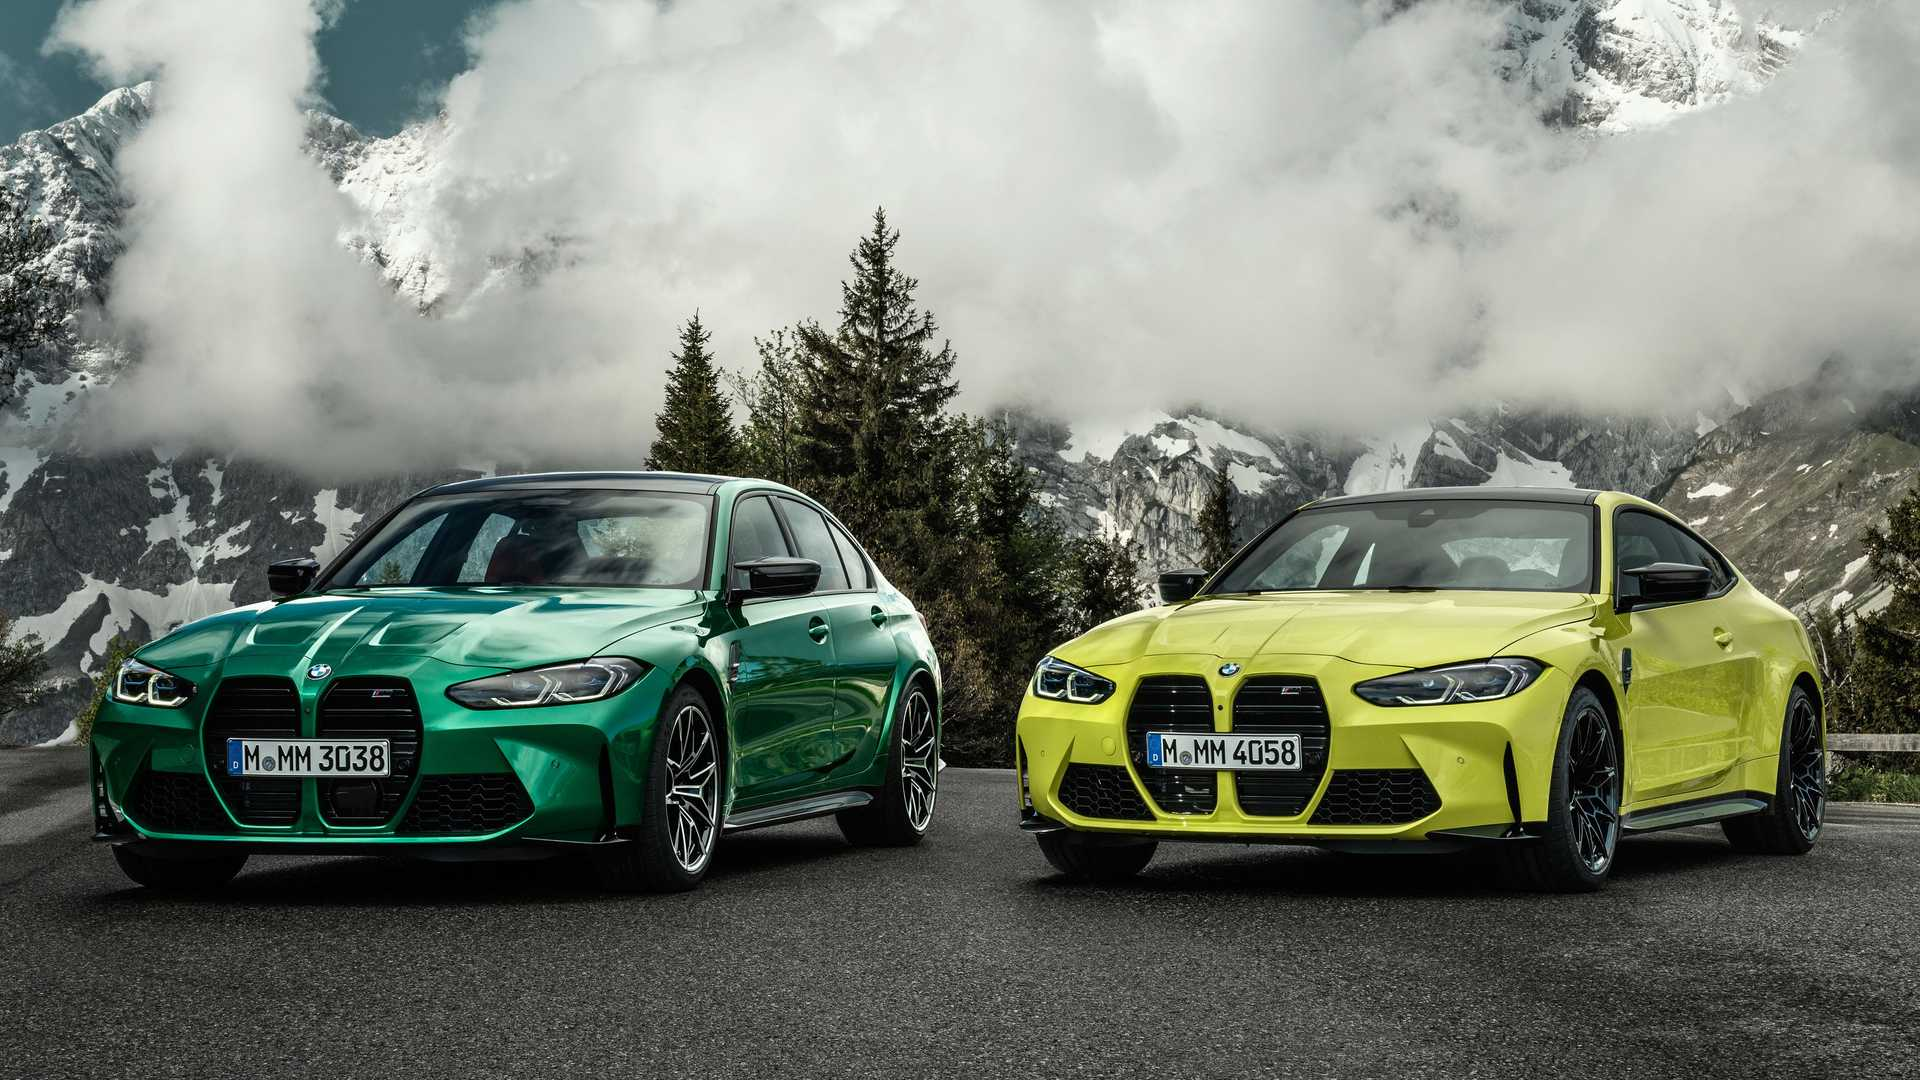 Come forth and stare at the new BMW M3 and M4